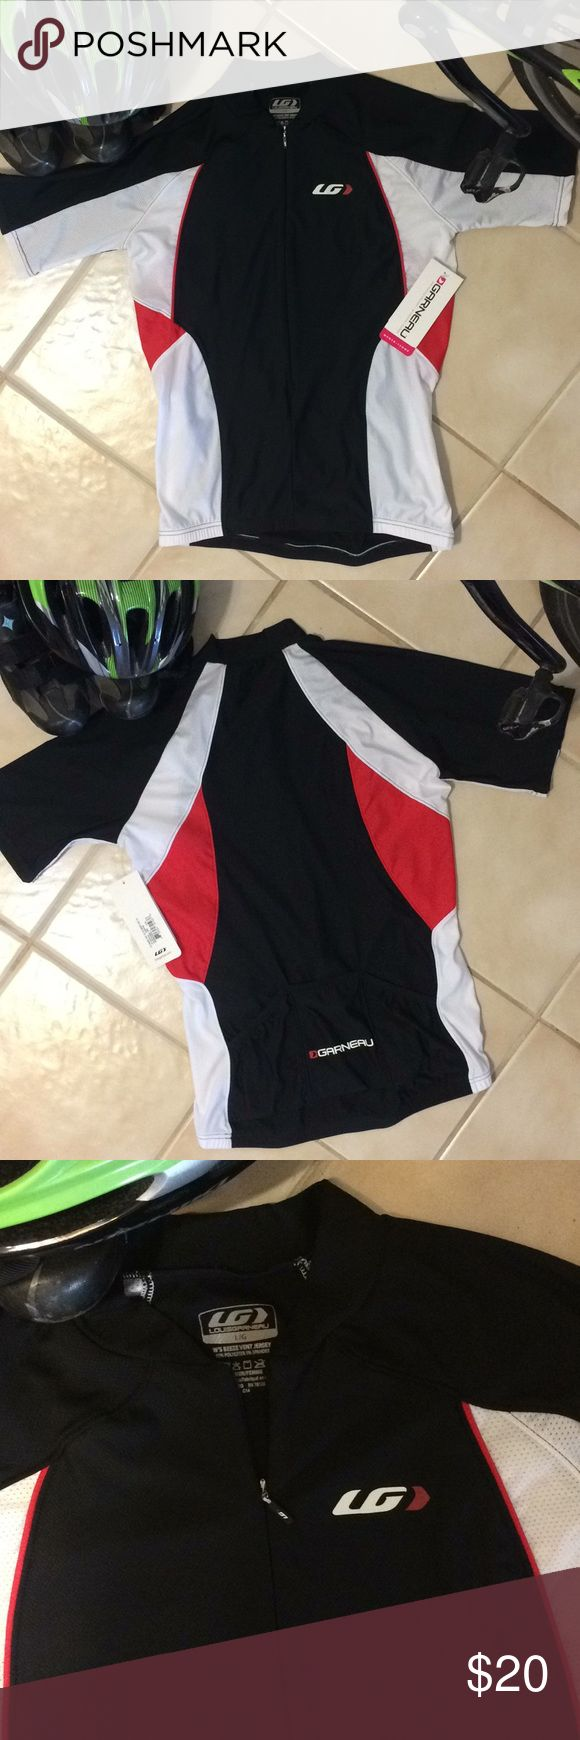 Louis Garneau Beeze Vent Women's Jersey (Lg) Louis Garneau Women's Beeze Vent cycling jersey — new with tags. Size large (not super-tight race fit). Flattering design in black, white and red with reflective detailing. Full zip with non-binding elastic at hem & open sleeves. Super lightweight with LG Airdry fabrics for wicking sweat & fast evaporation. Mesh panels make this very breathable. Also features UV protection. MSRP'd for $54.99. Louis Garneau Tops